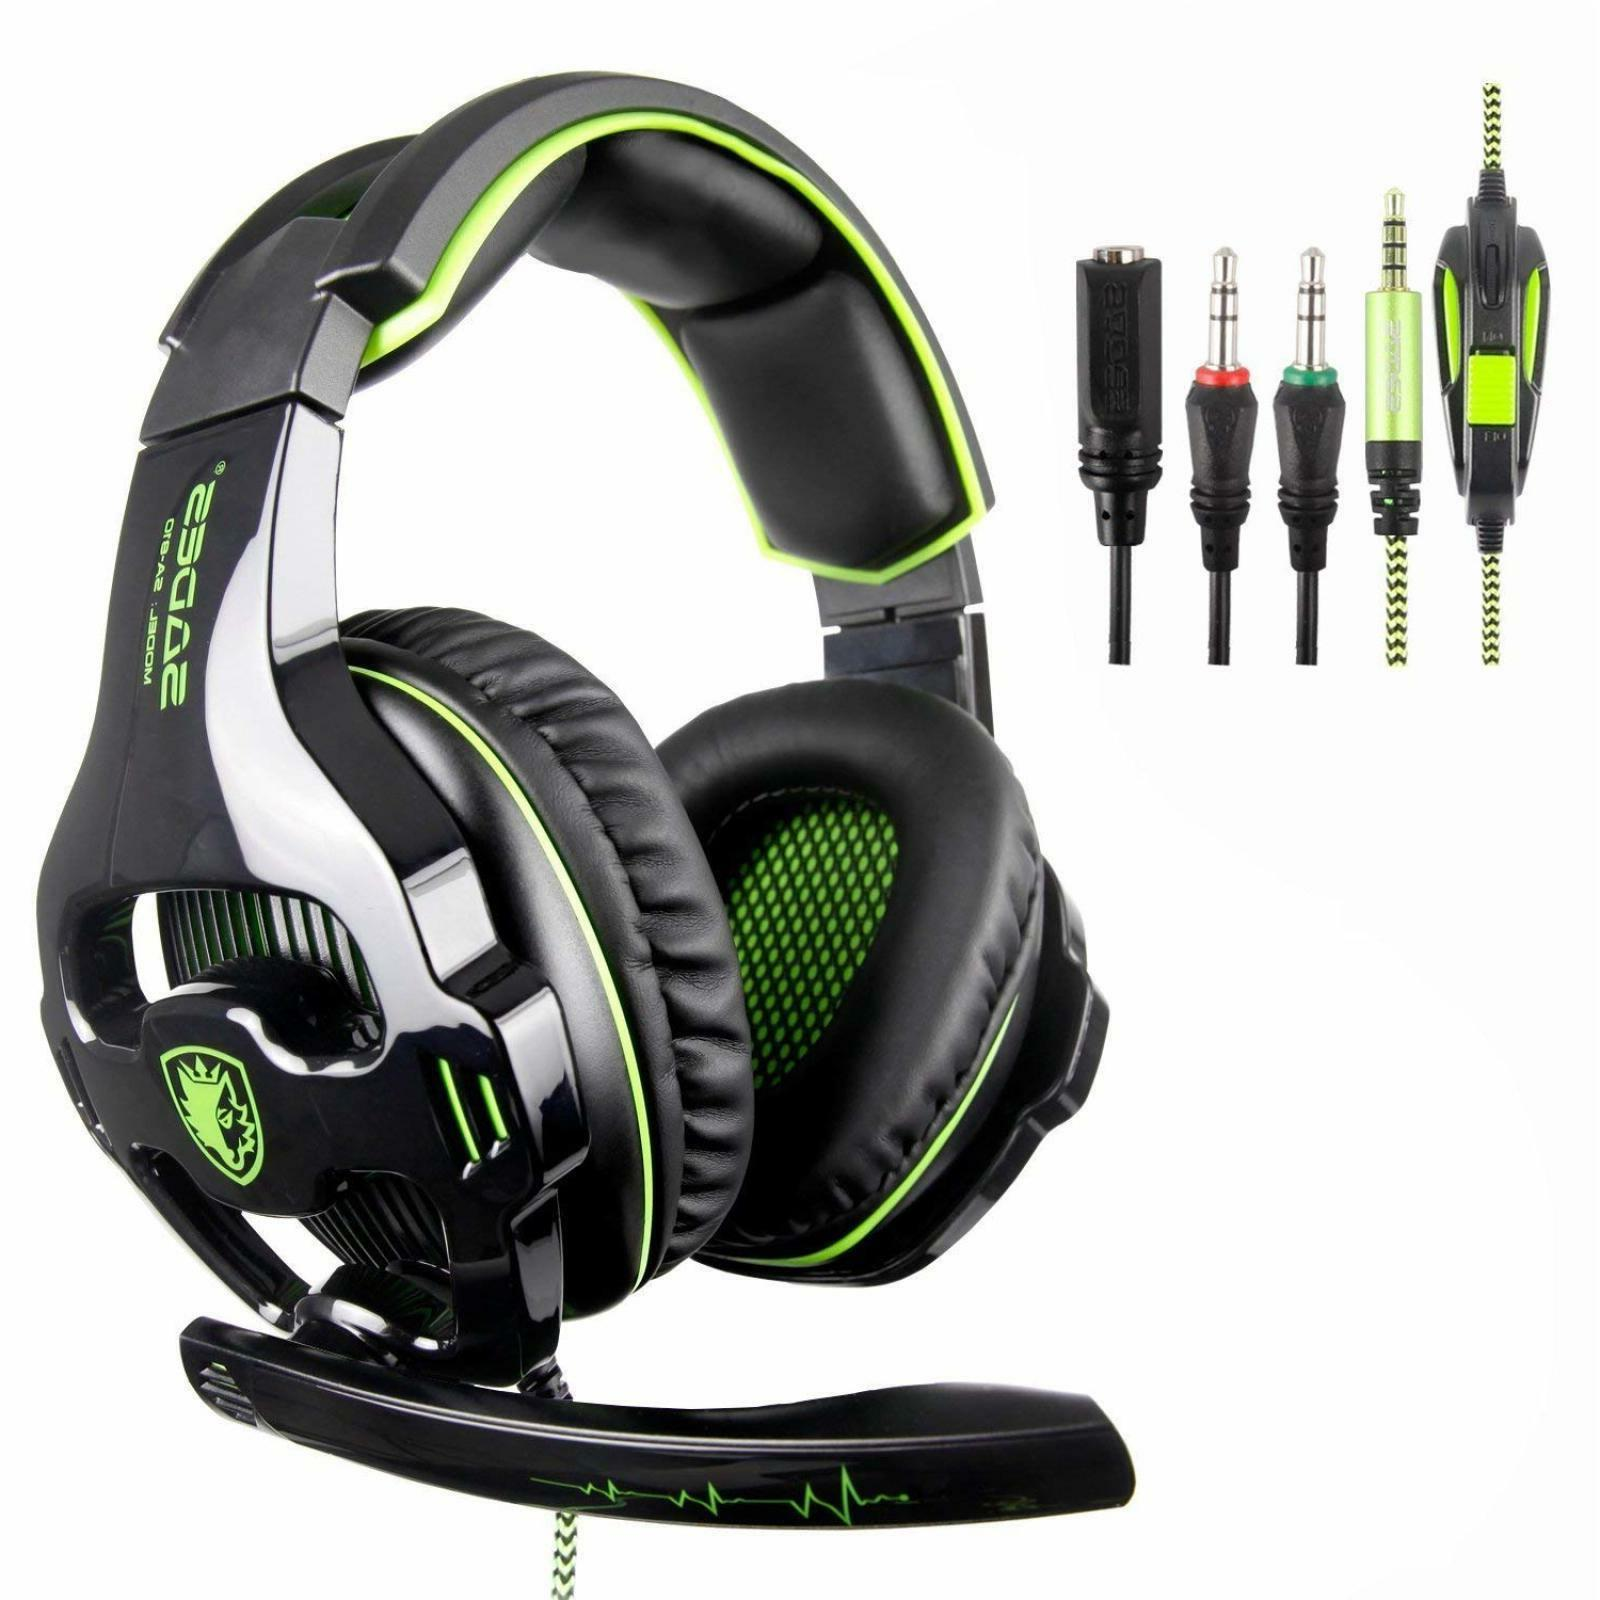 Stereo Gaming Headset Gamer Headphones Xbox One PC PS4 Ear C